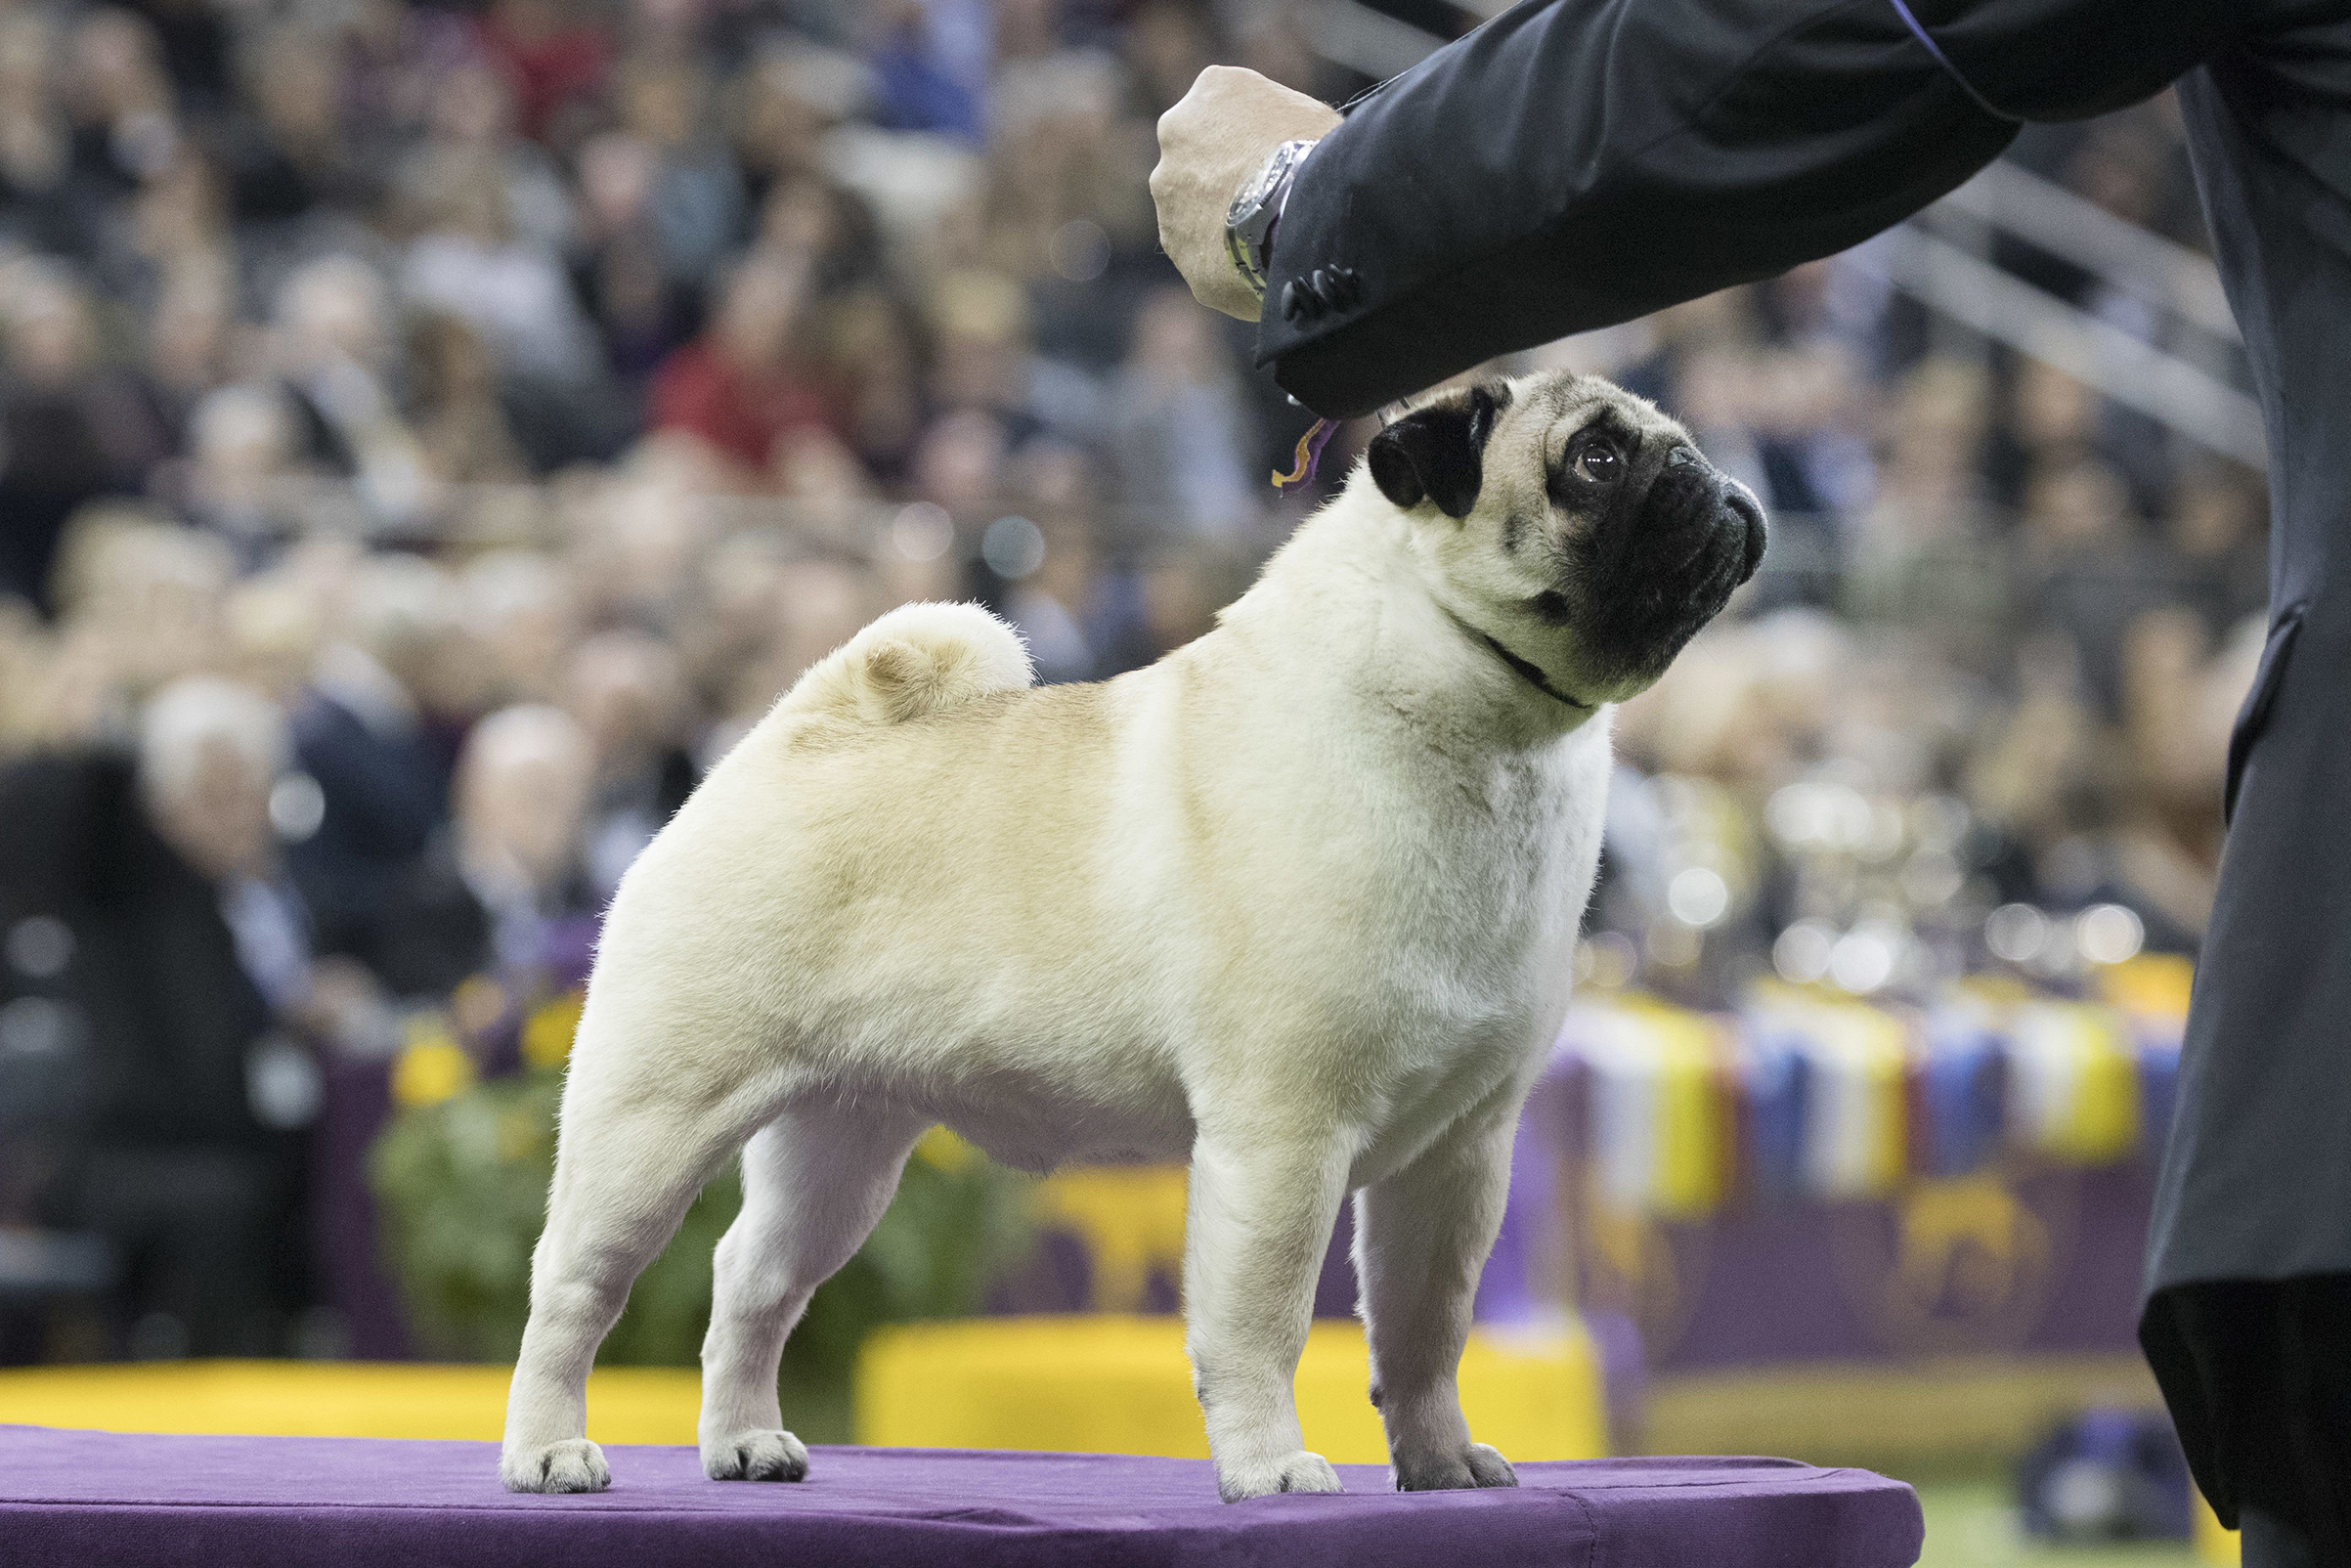 Esteban Farias shows Biggie, a pug, in the ring during the Toy group competition during the 142nd Westminster Kennel Club Dog Show.